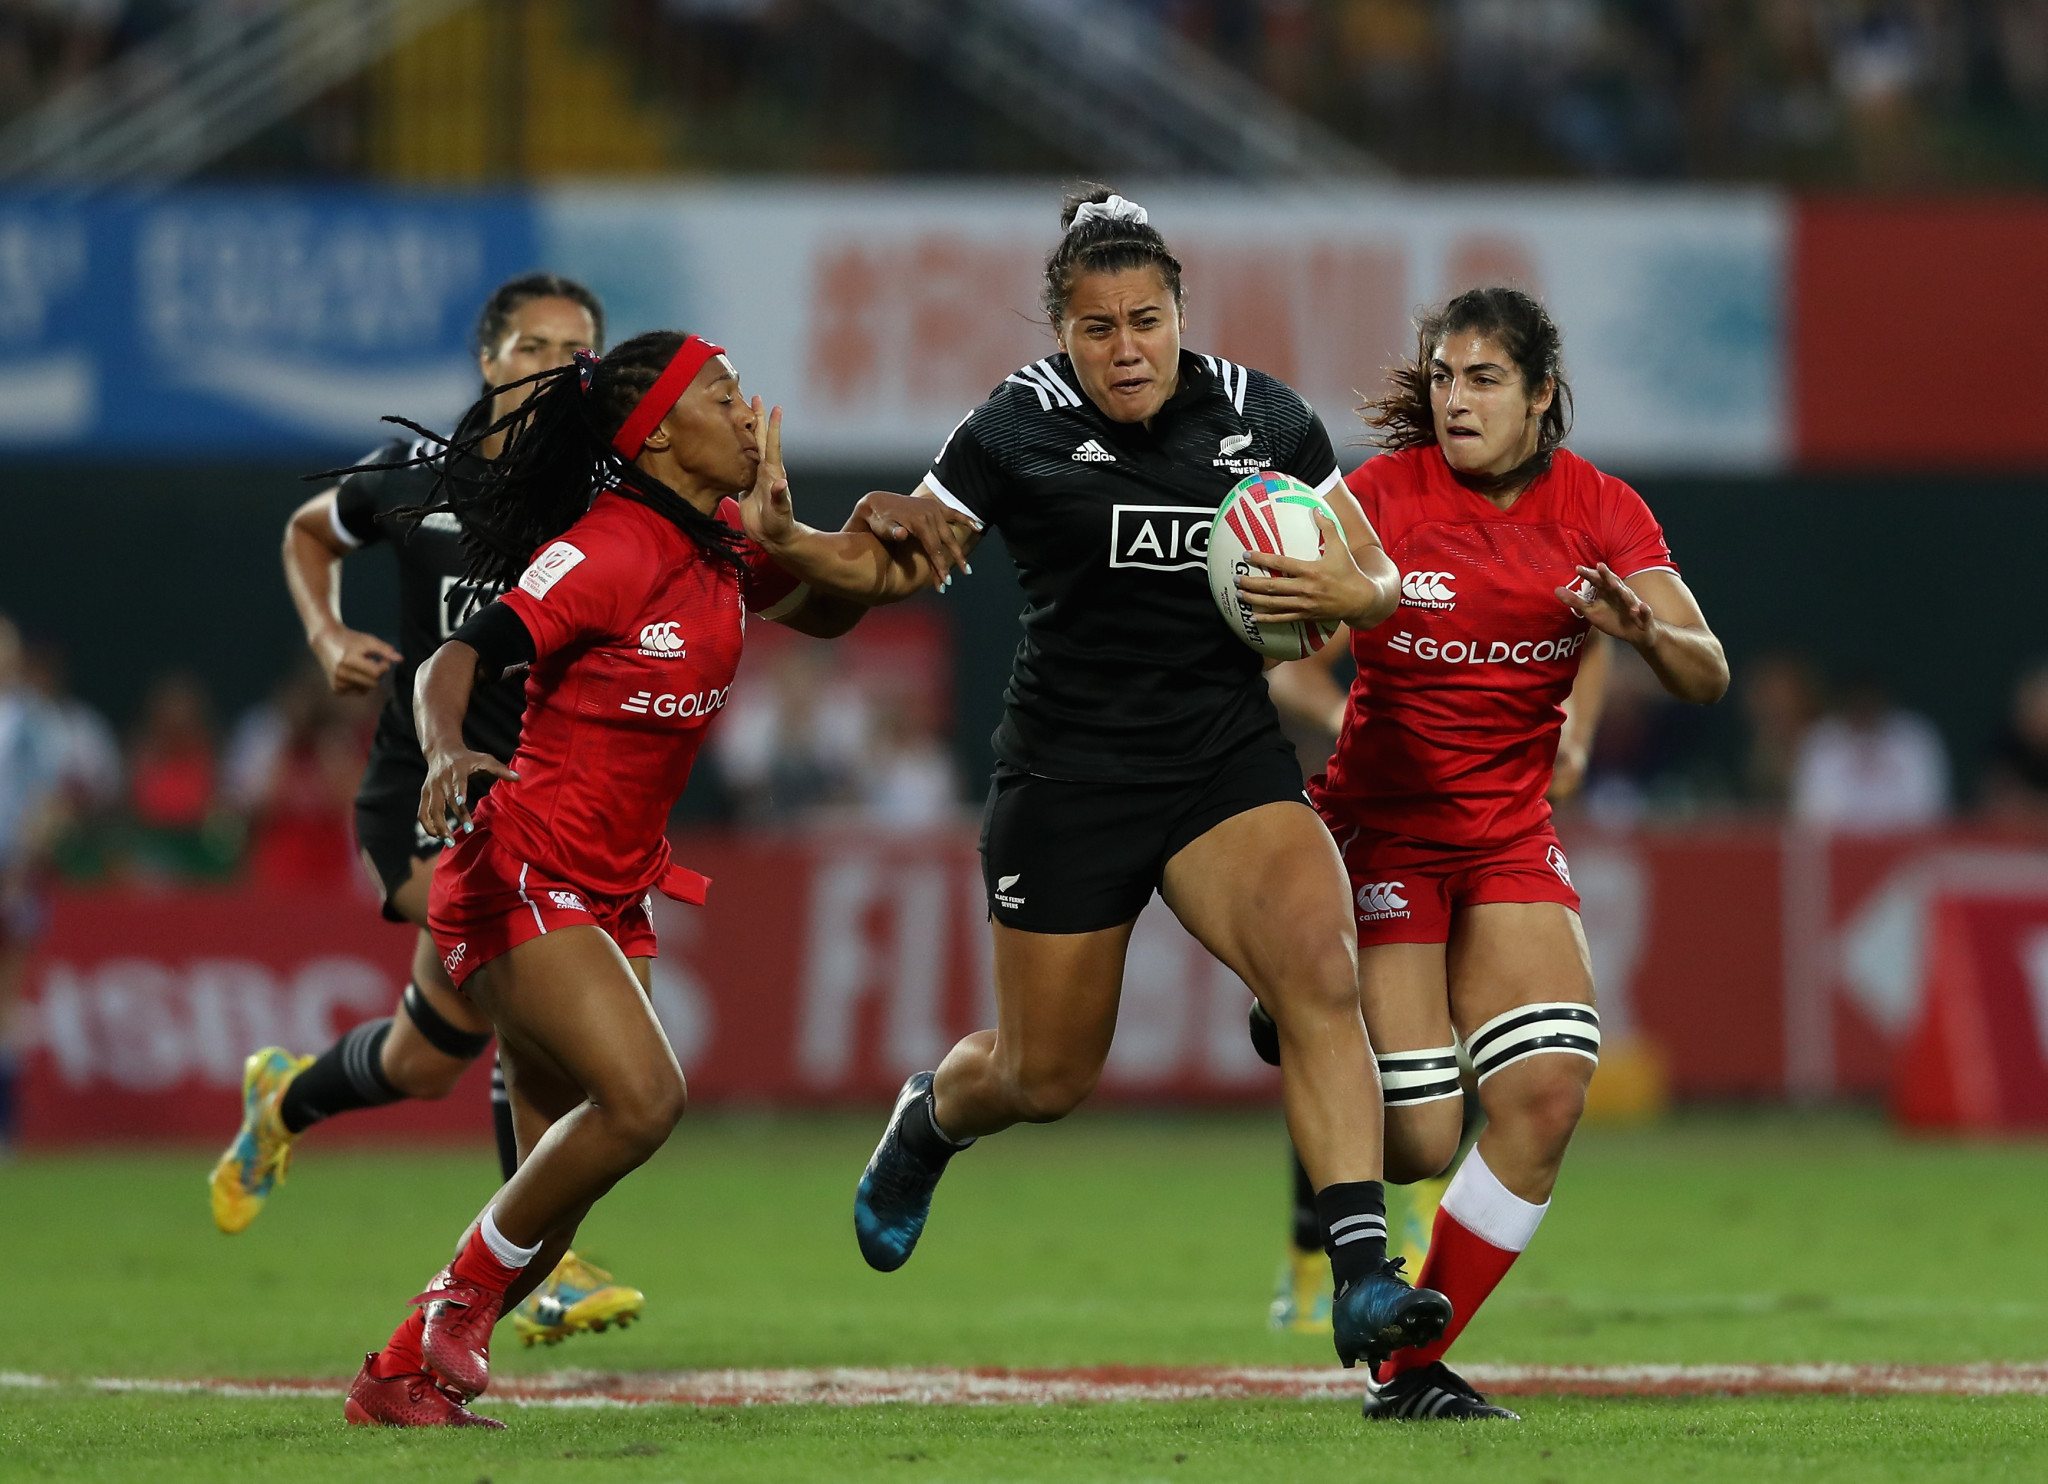 The World Rugby Sevens Series circuit will feature six combined men's and women's rounds for the next four seasons ©Getty Images